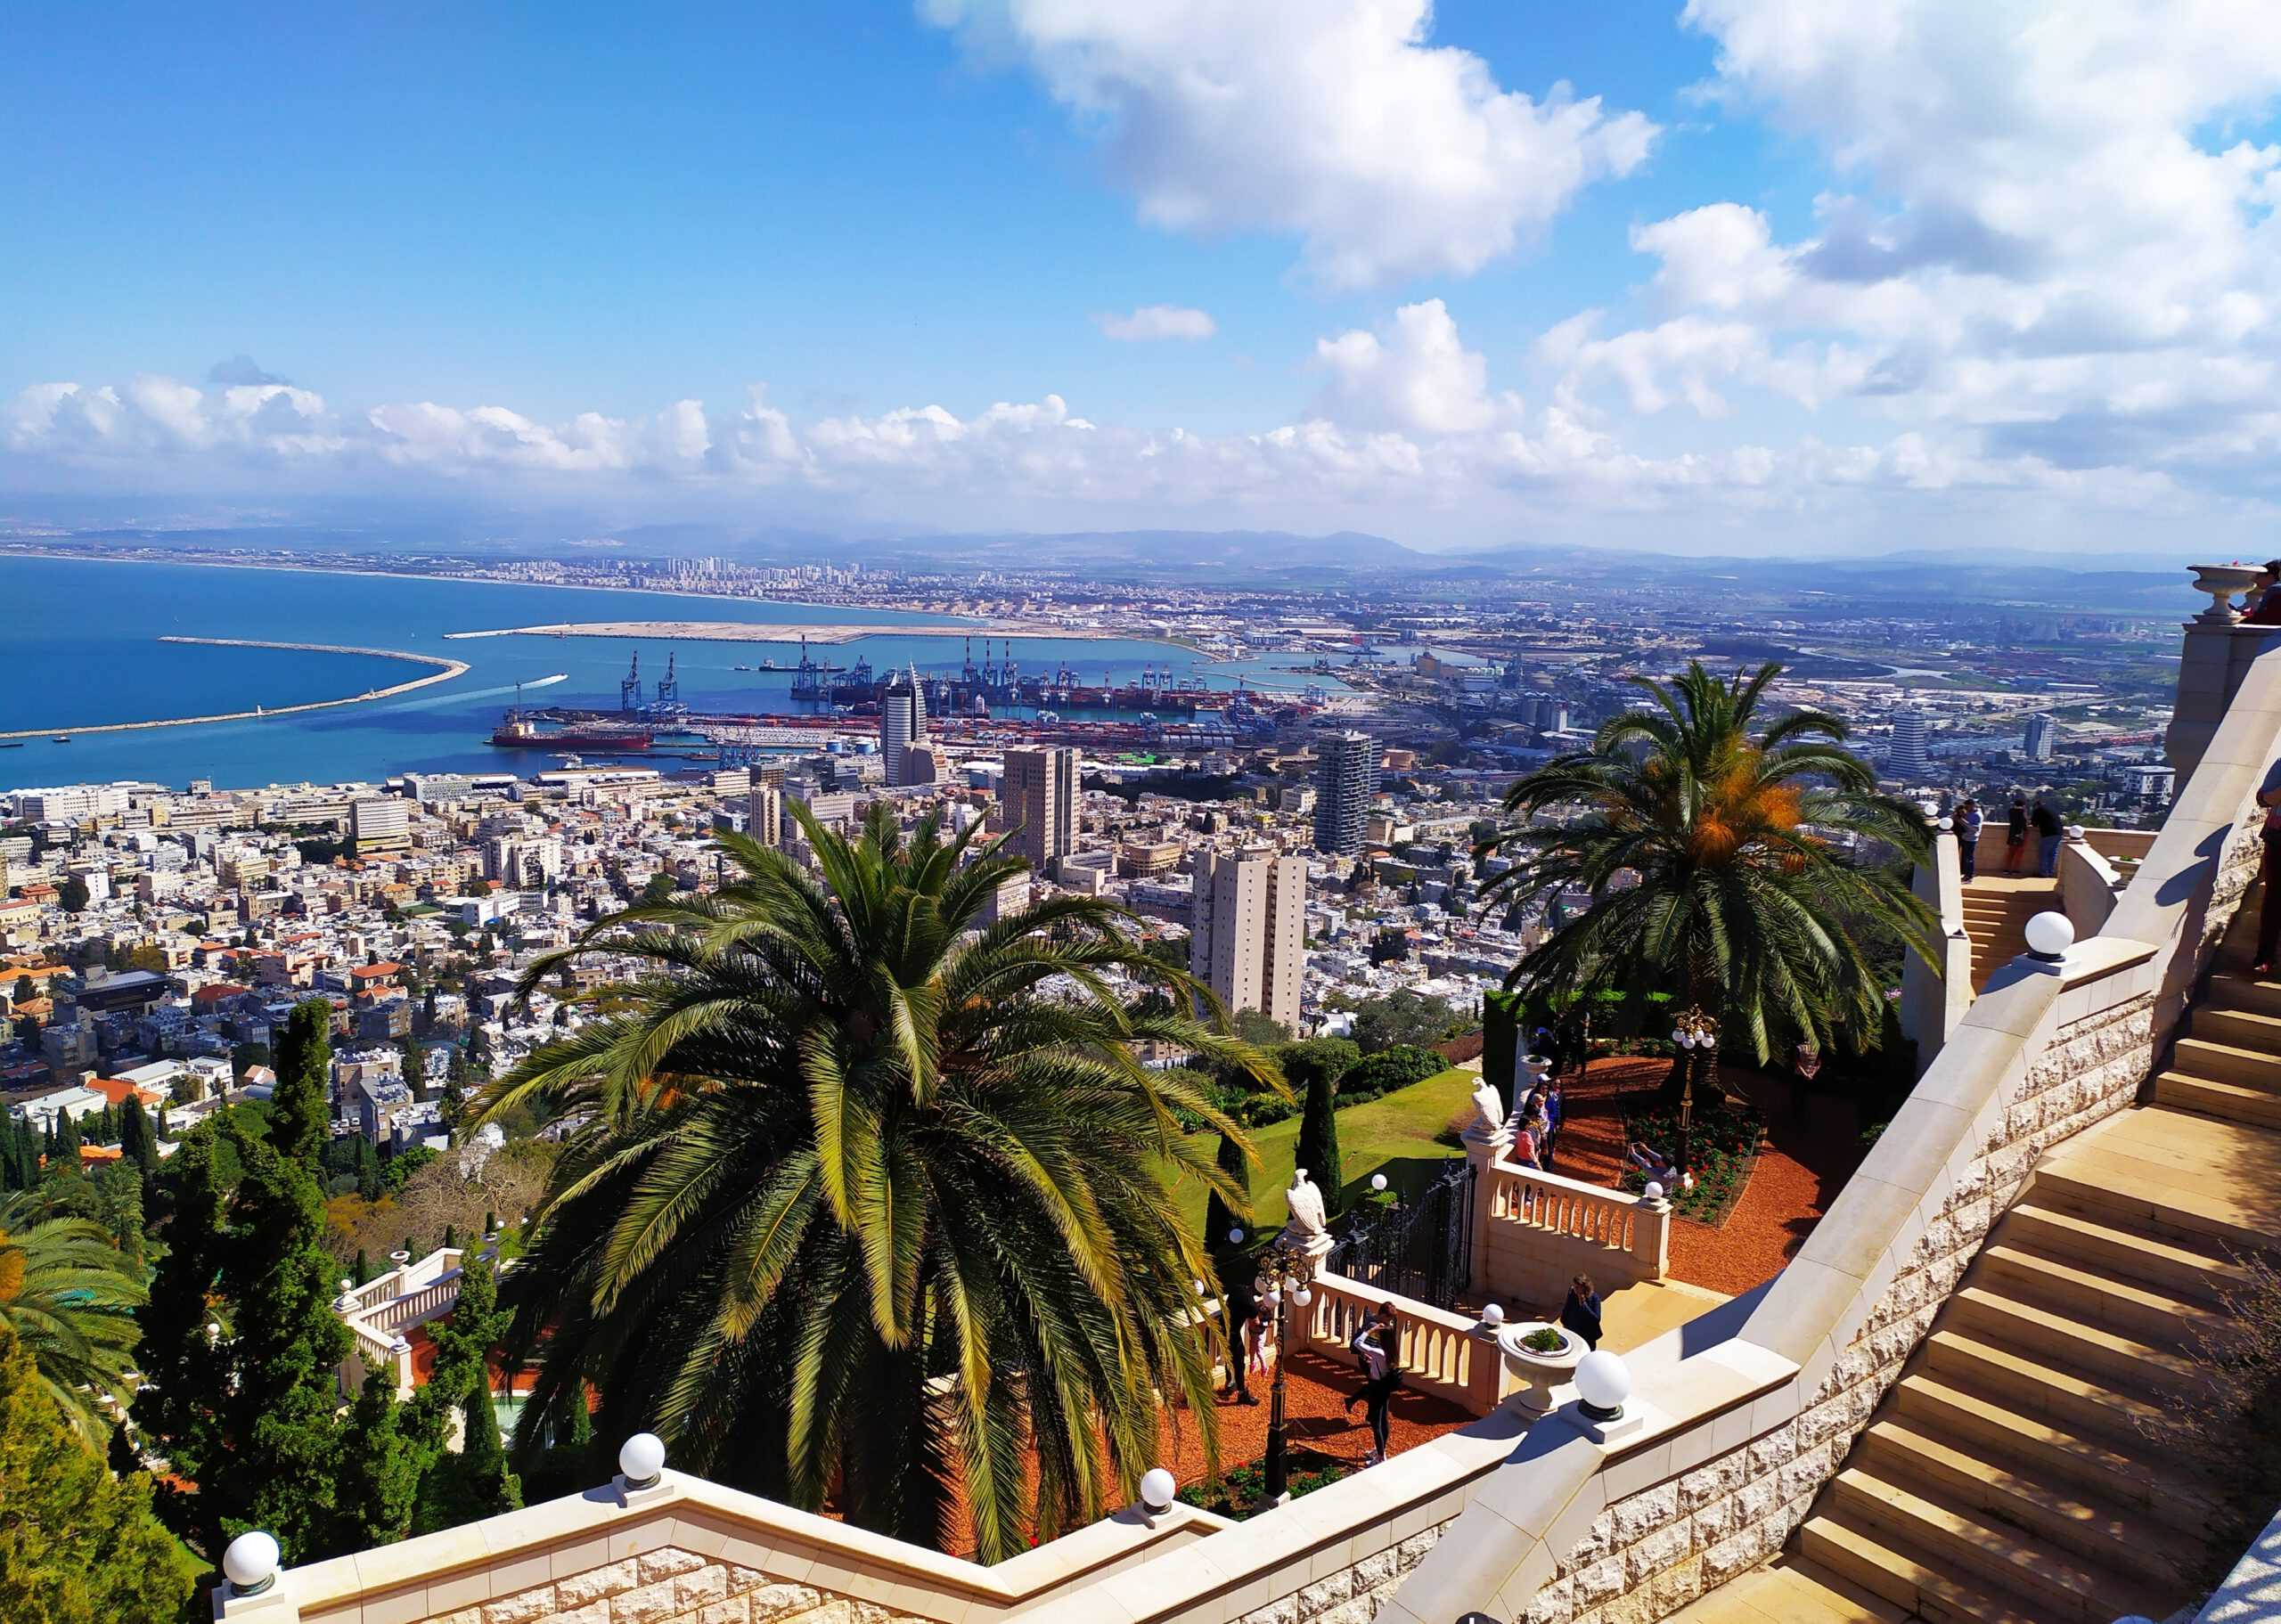 Attractions in Haifa for free, Bahai gardens in Haifa